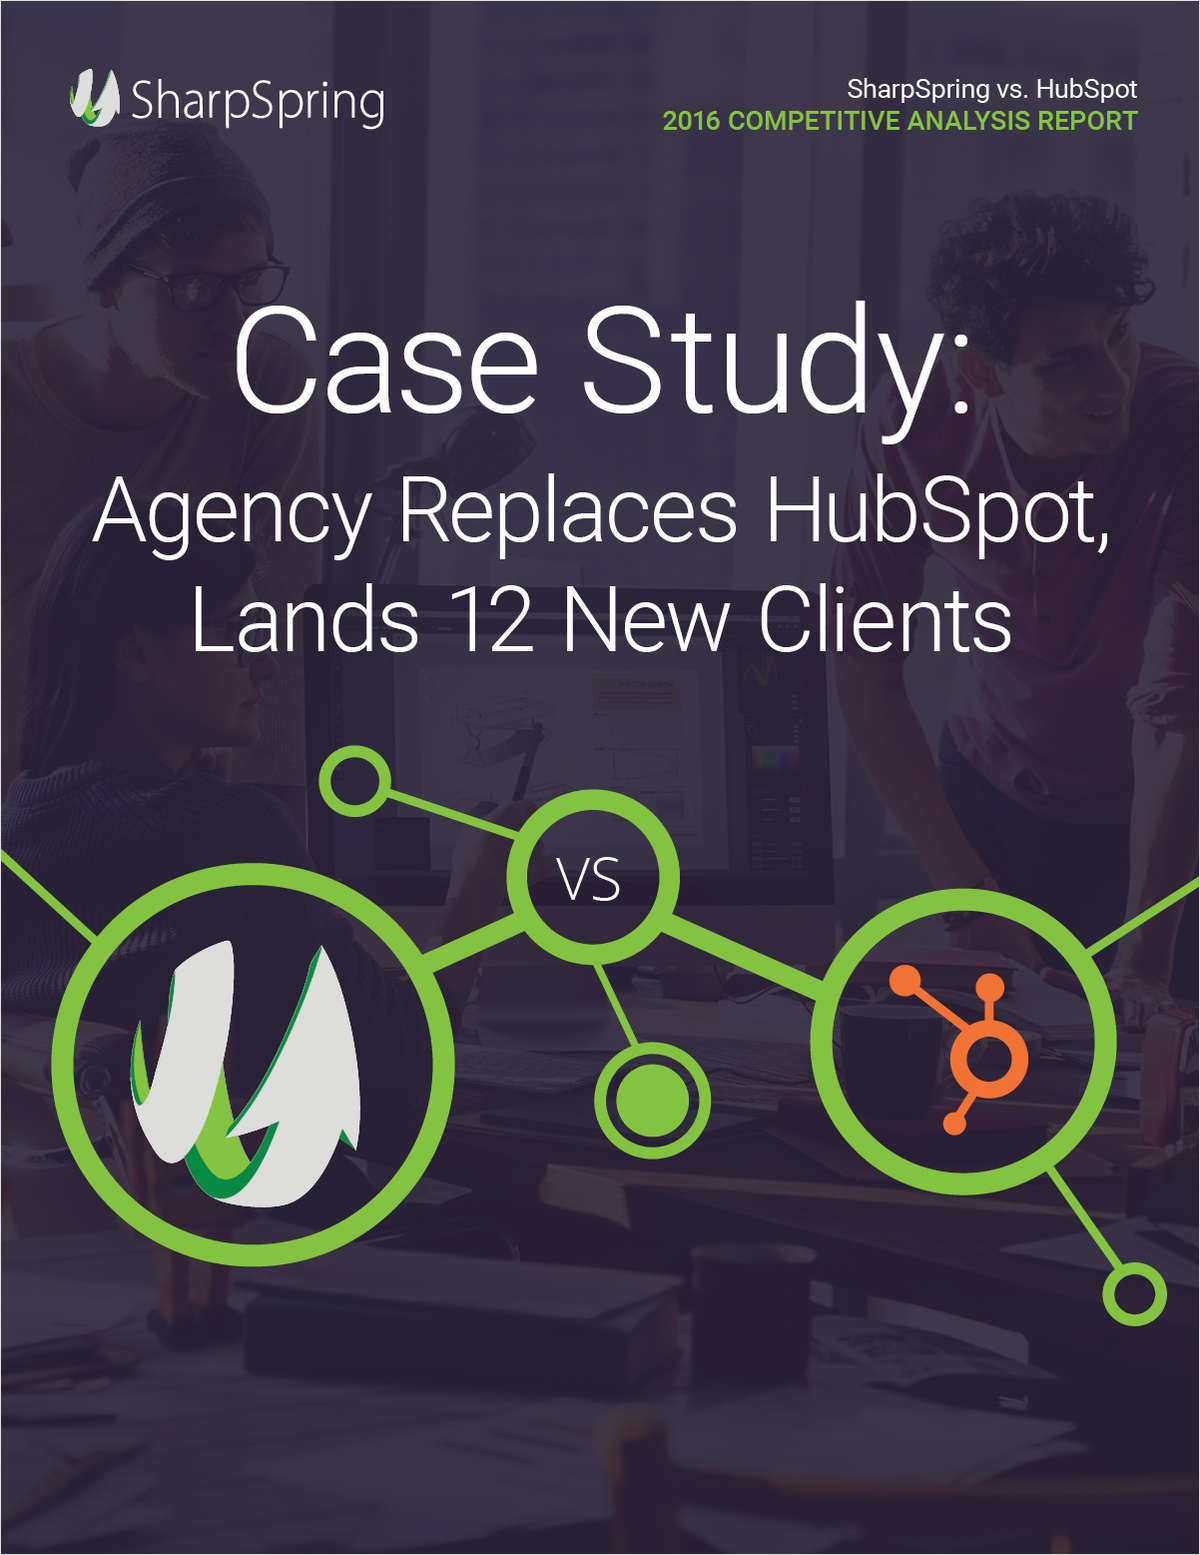 Agency Replaces HubSpot - Lands 12 New Clients